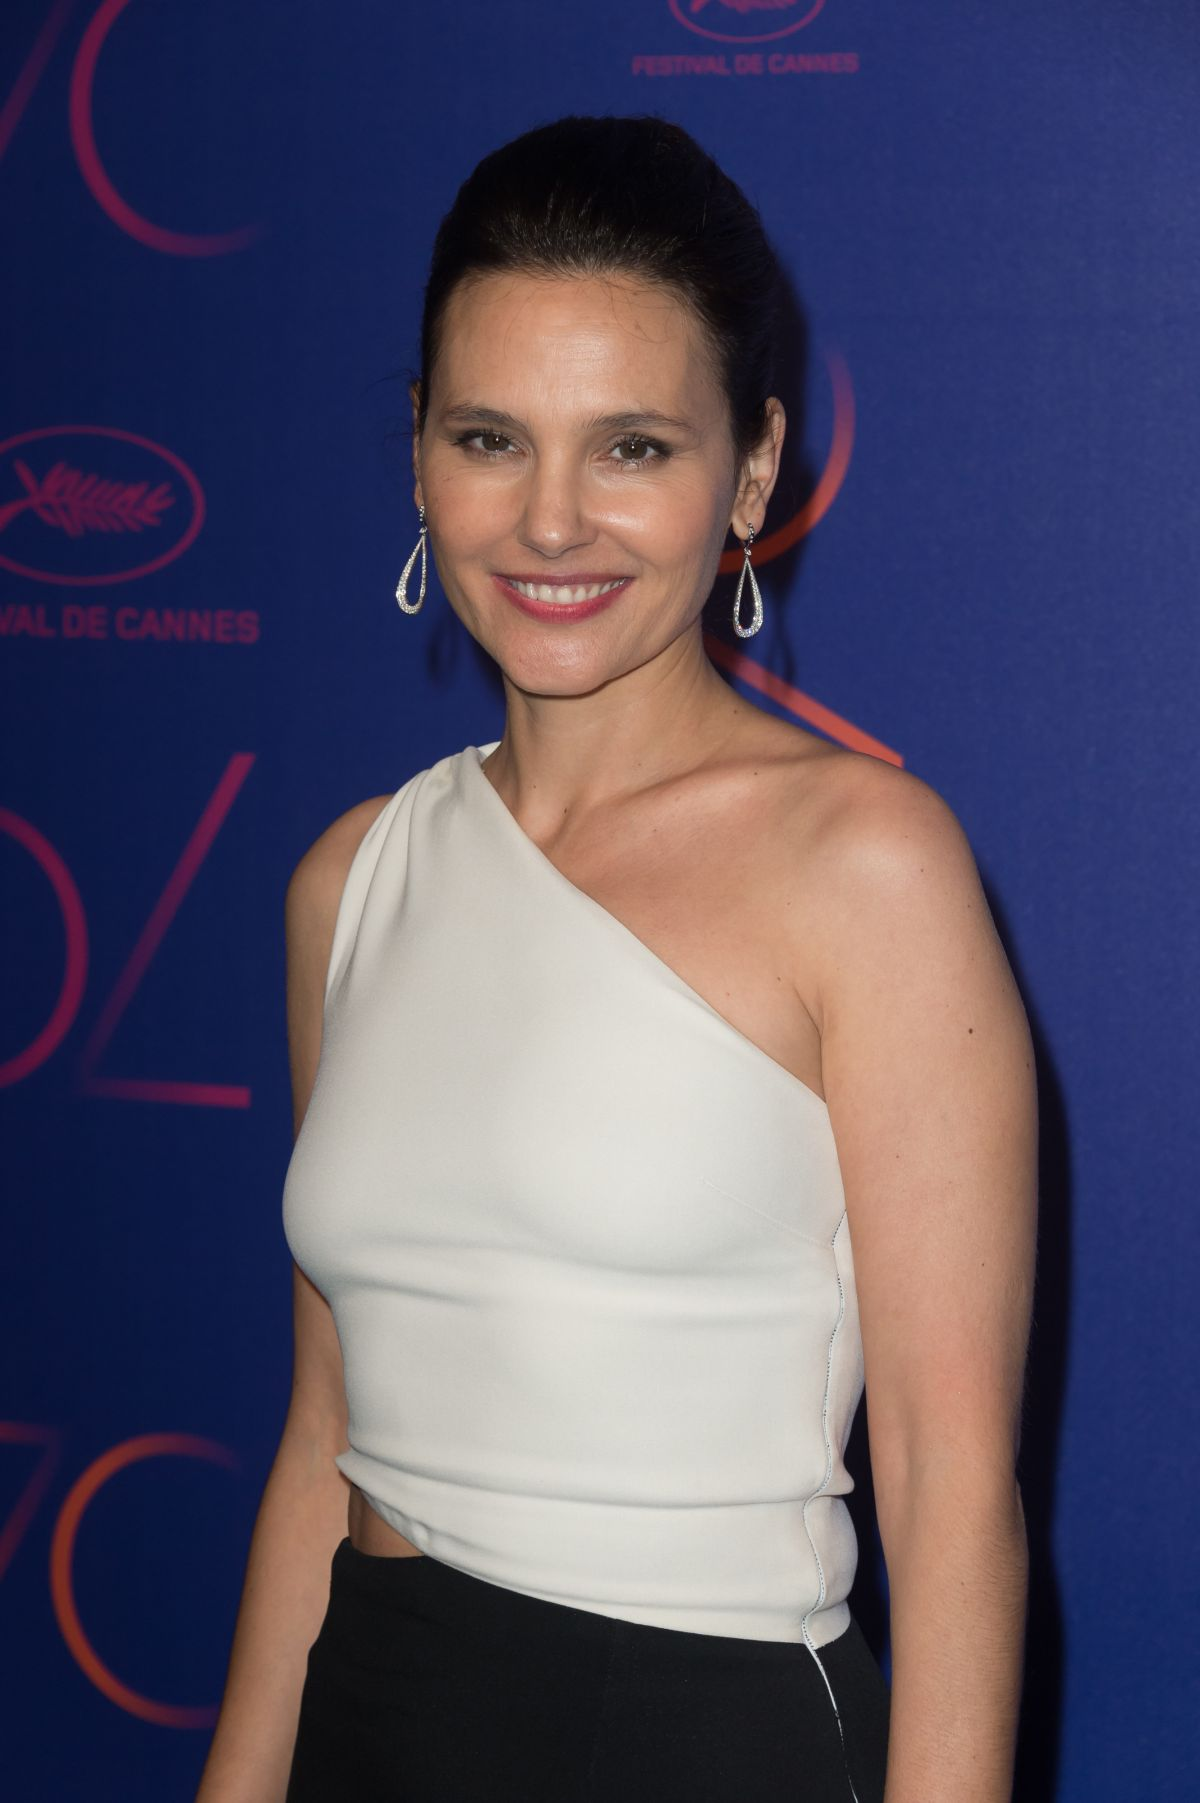 VIRGINIE LEDOYEN at Cannes Film Festival 70th Anniversary Dinner 05/23/2017